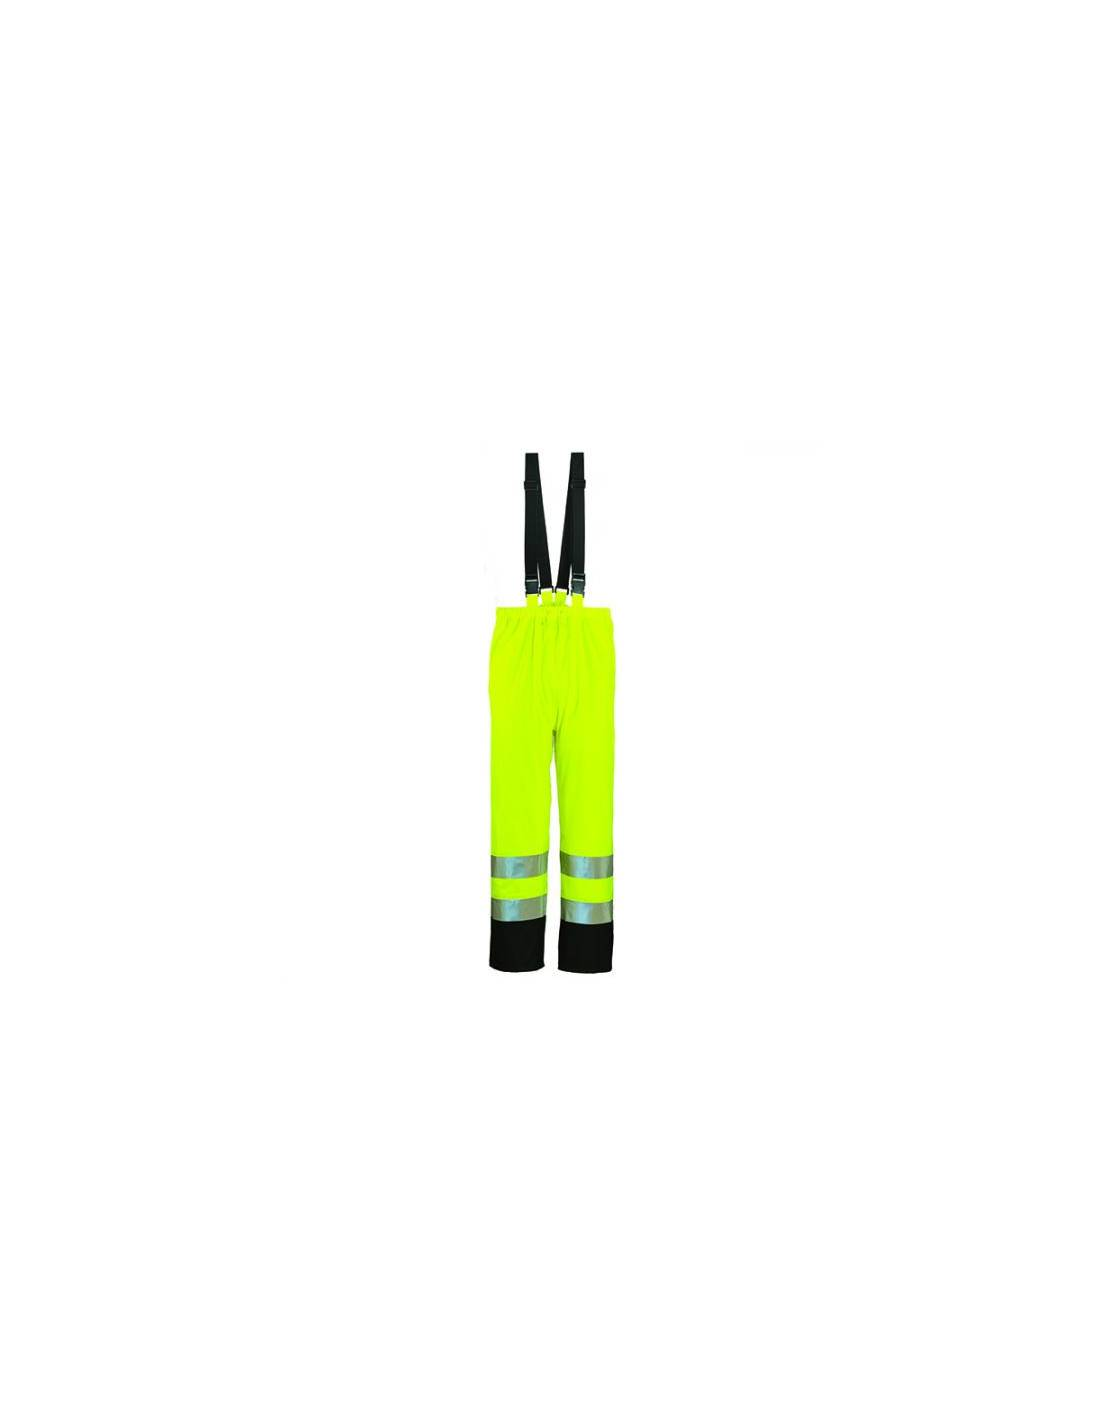 Pantalon HARBOR PU HI-VIZ jaune ou orange fluo 3M - EUROPROTECTION